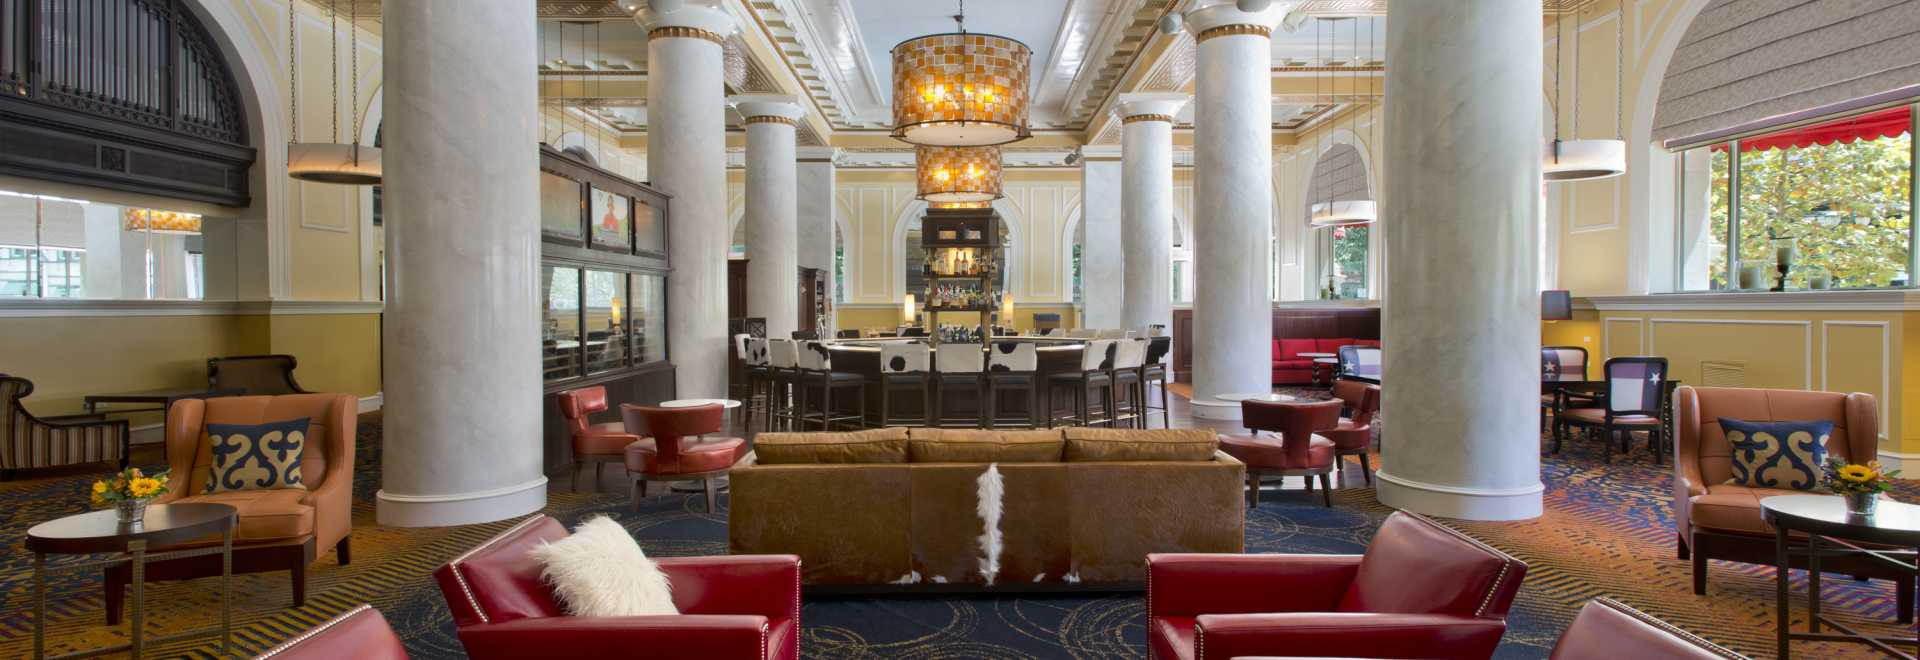 Iconic Houston Hotels | Classic Hotels in Houston, Texas